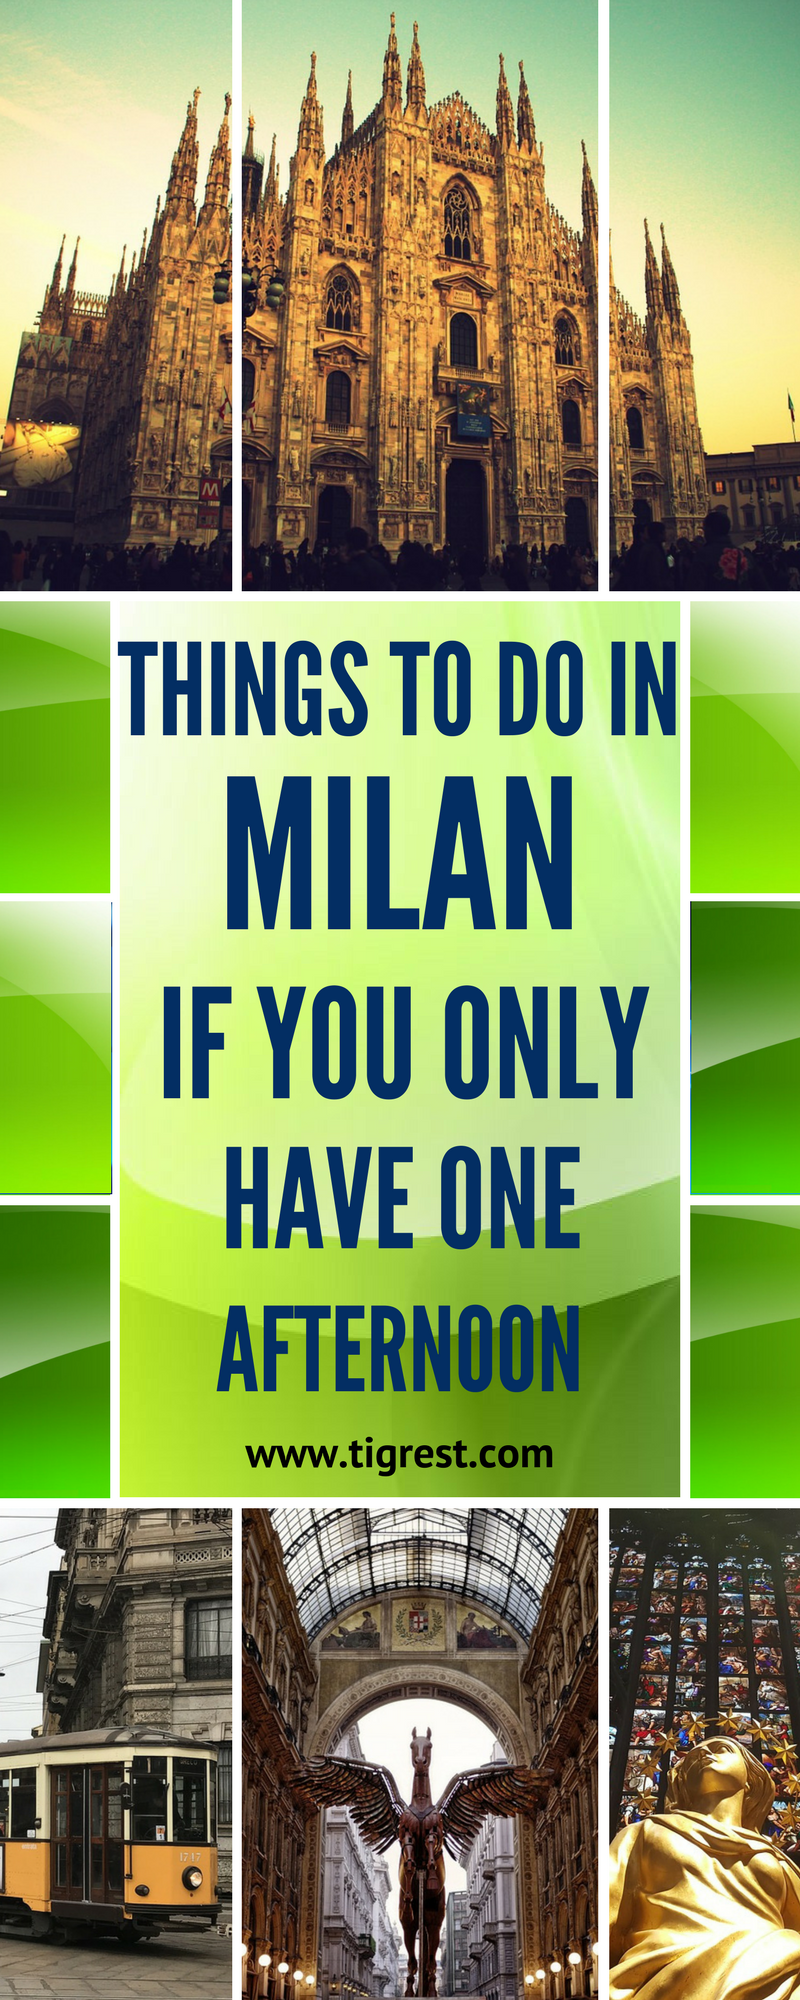 How to spend few hours in Milan italy? Best places to visit, things to eat and tips how to get to/from bergamo airport  ✈✈✈ Don't miss your chance to win a Free International Roundtrip Ticket to Milan, Italy from anywhere in the world **GIVEAWAY** ✈✈✈ https://thedecisionmoment.com/free-roundtrip-tickets-to-europe-italy-milan/